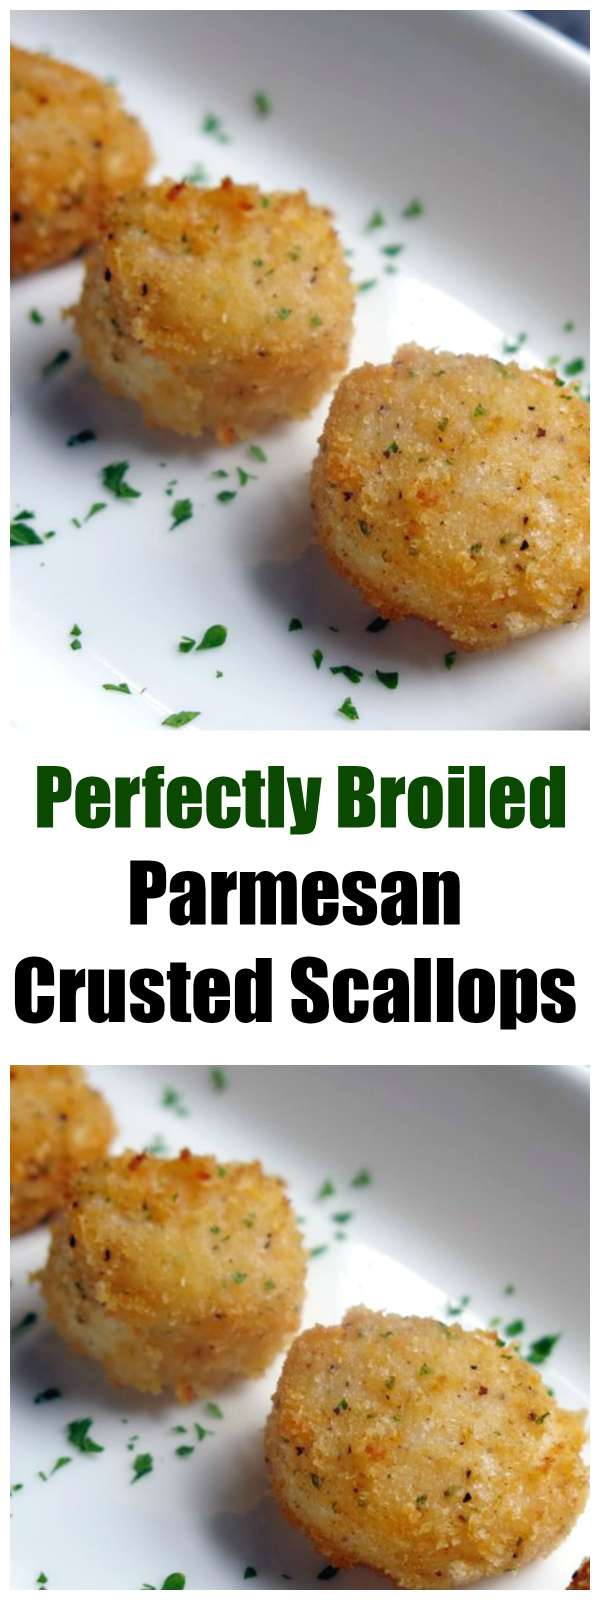 It's Easy to Perfectly Broil these Parmesan Crusted Scallops! A favorite healthy recipe from our make ahead meal assembly store that is perfect as an appetizer or a special dinner.